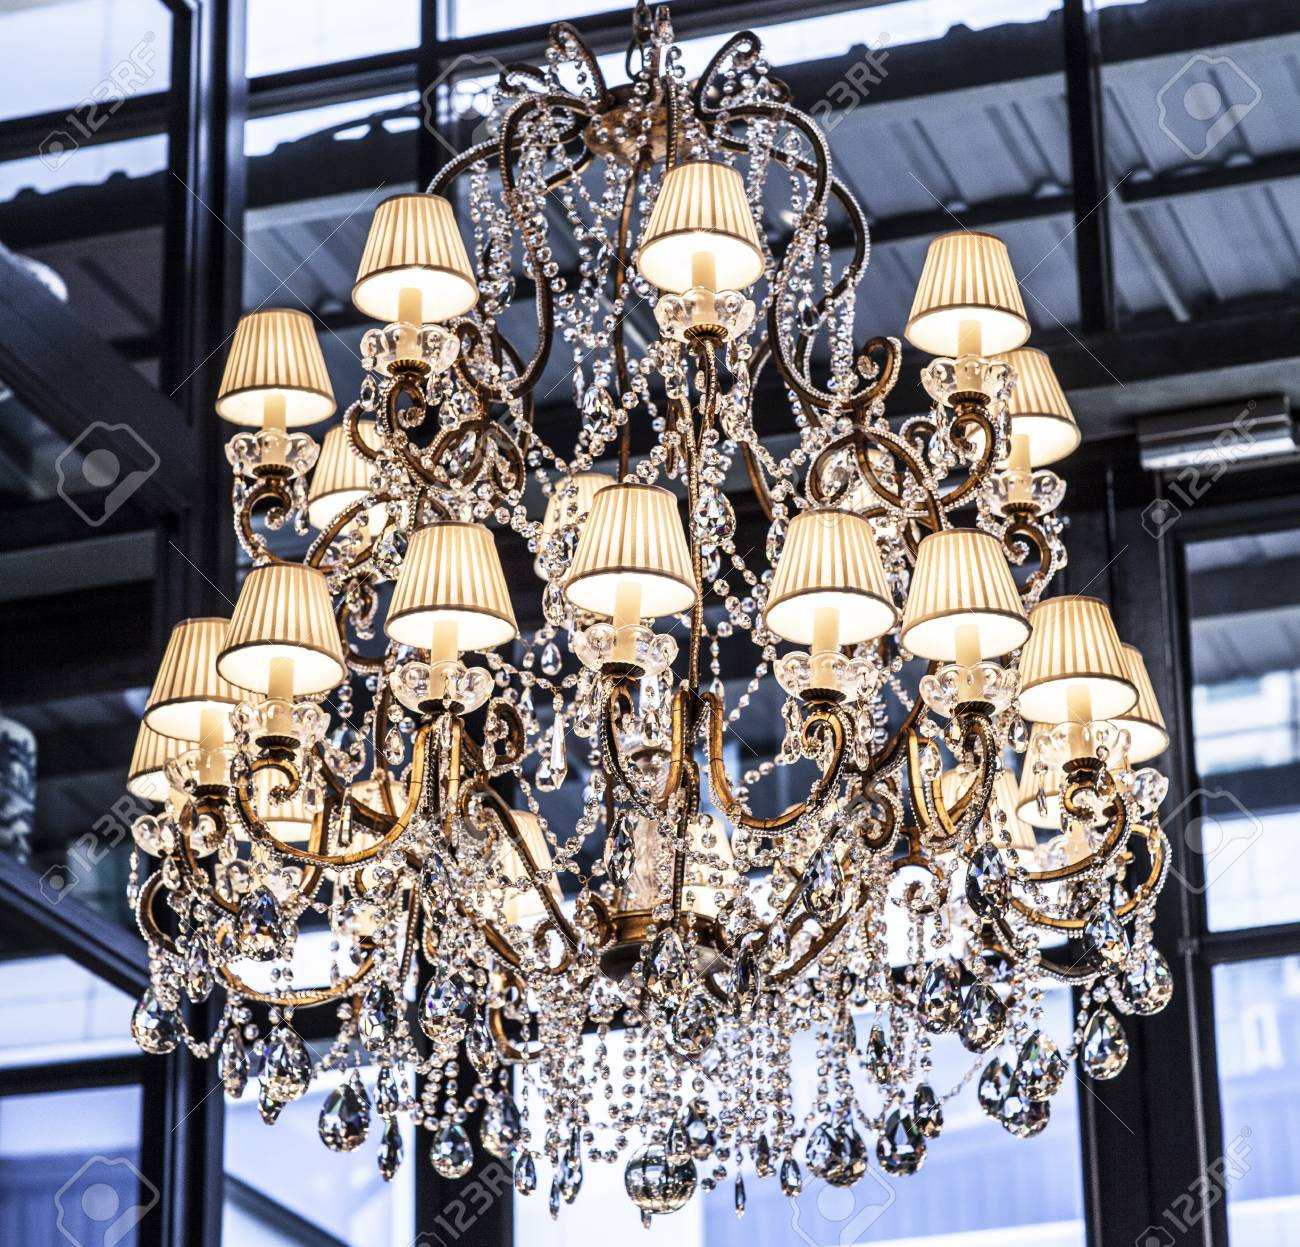 close-up of a beautiful crystal chandelier Stock Photo - 18808557